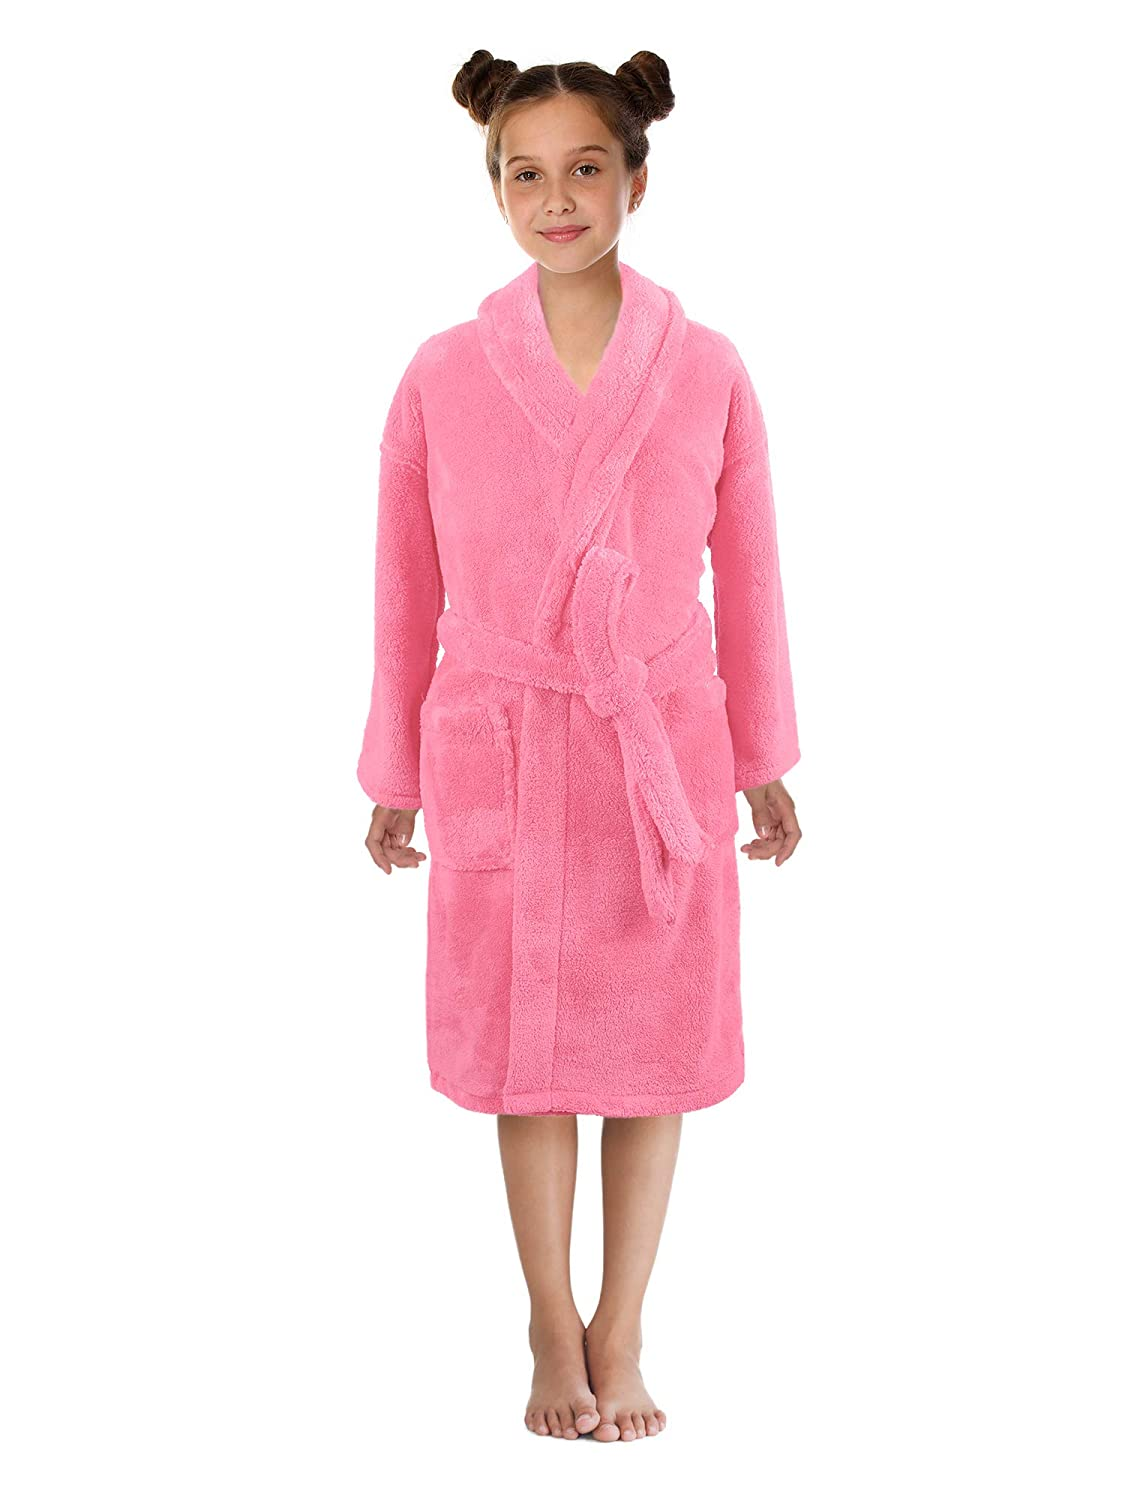 Ultra-Soft Plush Shawl Robes for Boys and Girls